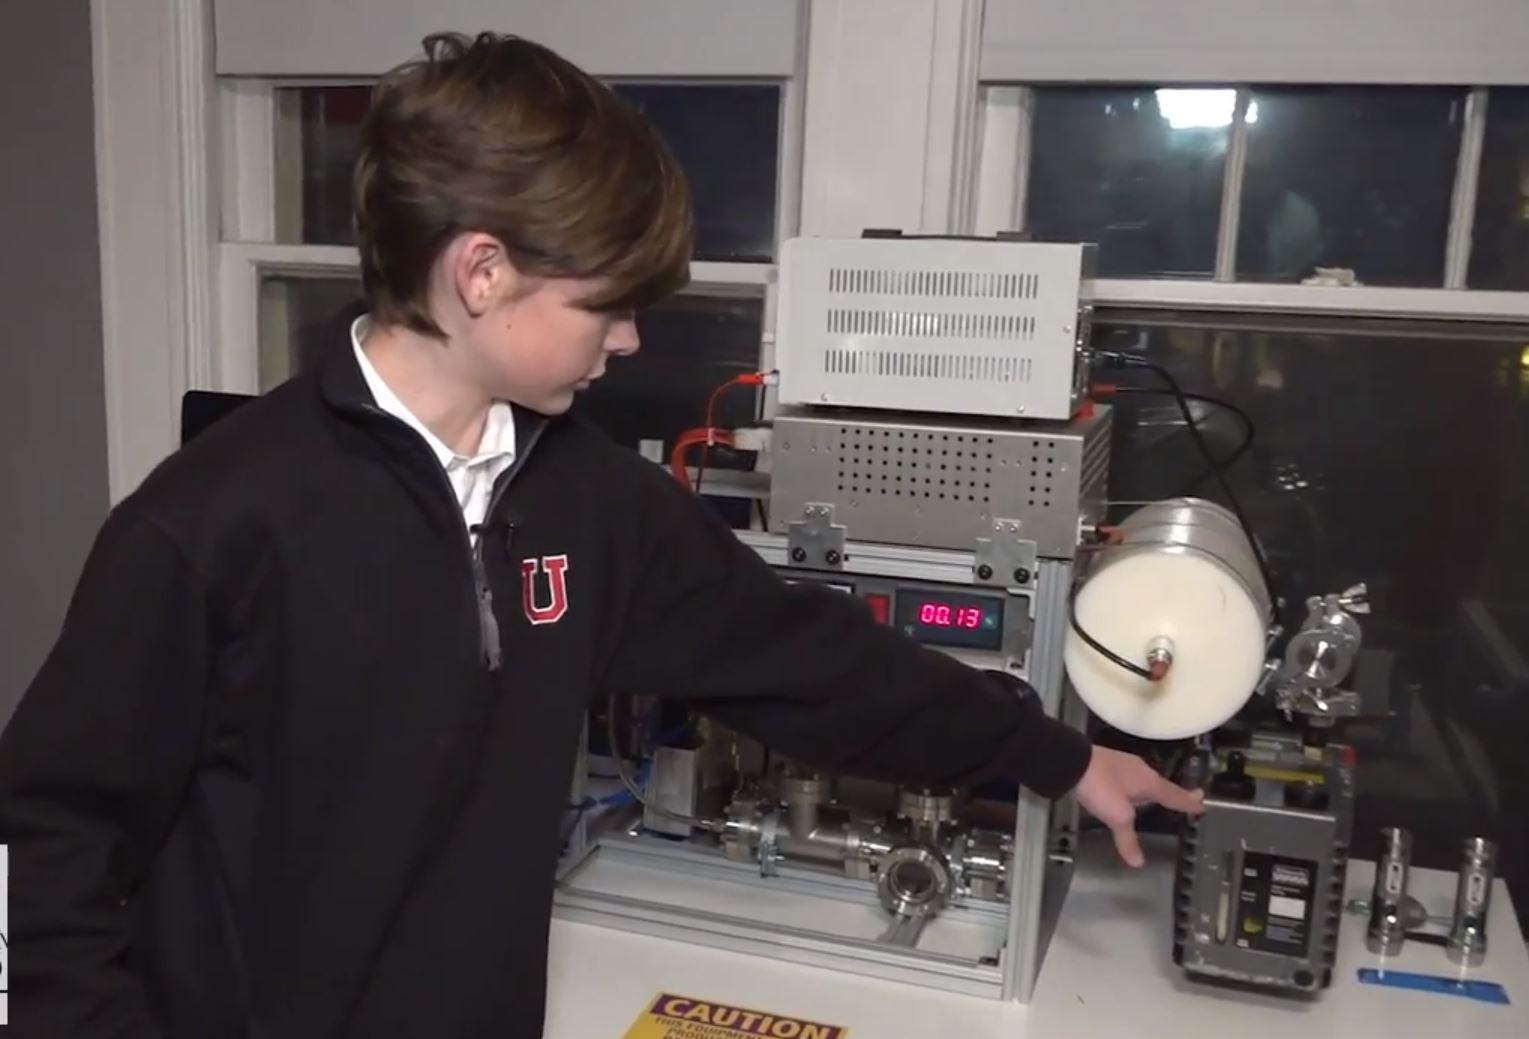 Picture: Fox News Boy creates nuclear reactor in his bedroom